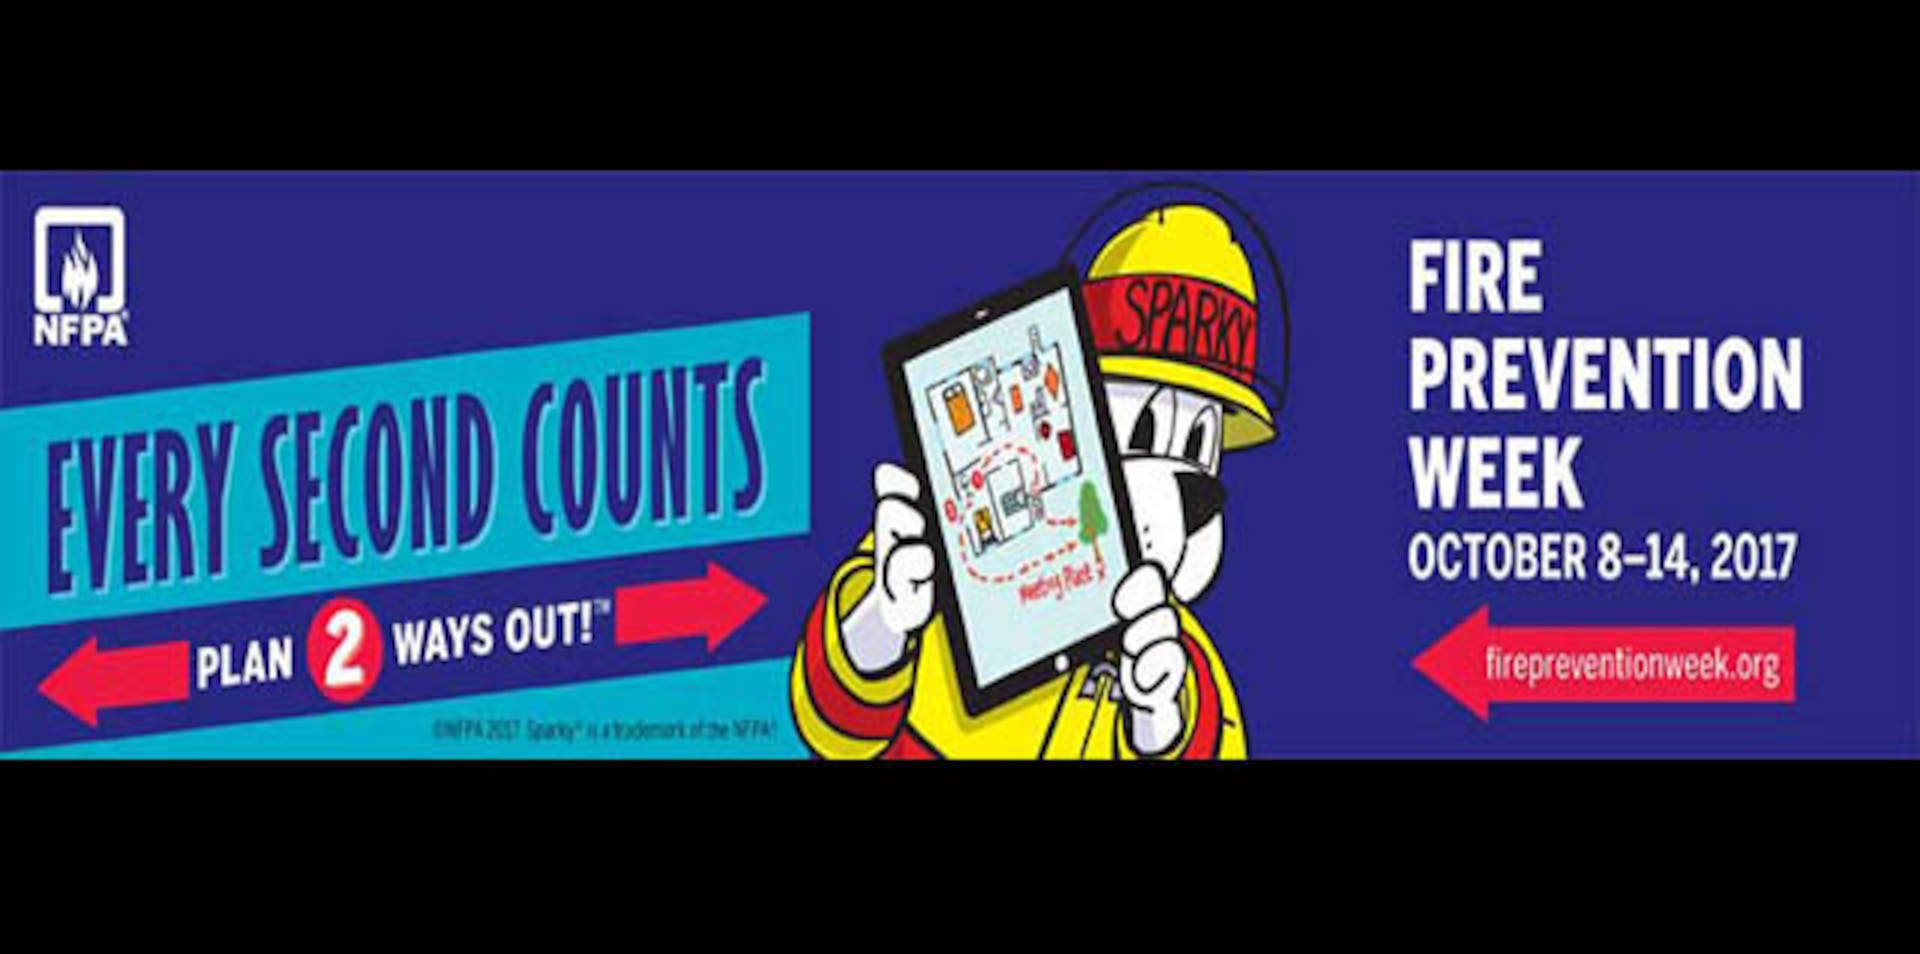 Fire Prevention Week is Oct. 8 - 14, 2017 and DLA Installation Support at Richmond, Virginia's Fire and Emergency Services personnel are sending information out to Richmond employees to check smoke alarms and plan and practice two ways out, because every second counts.